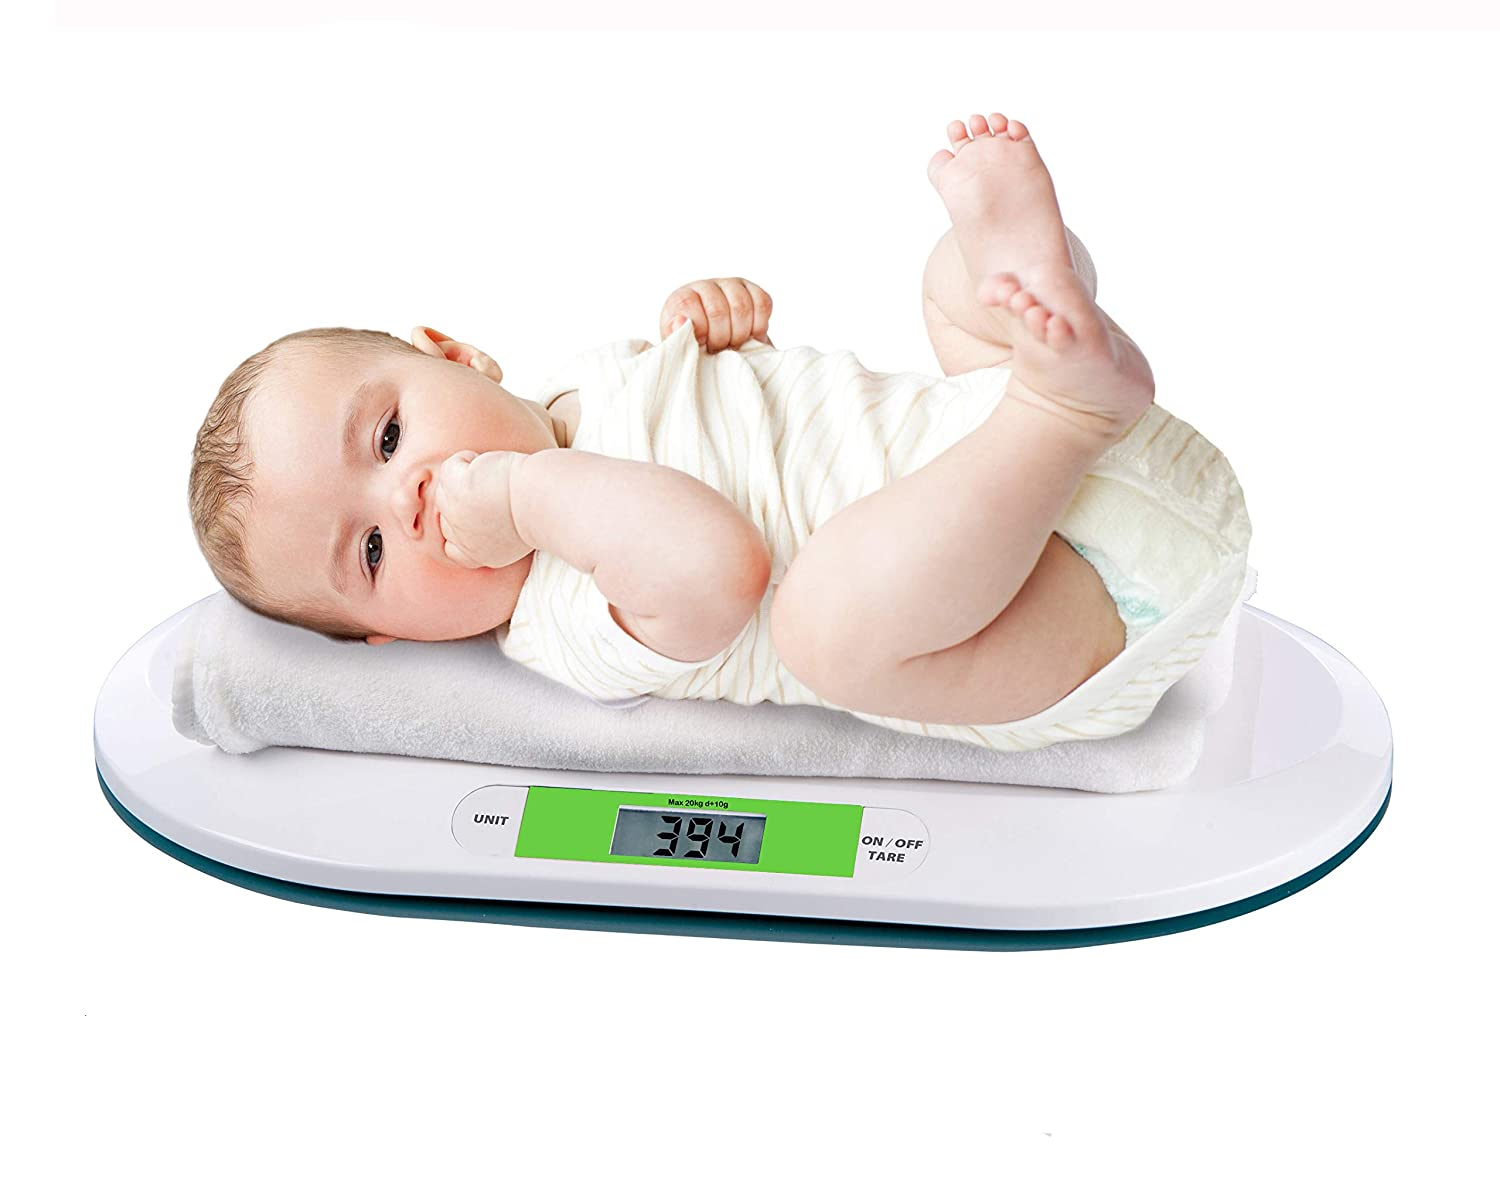 weighing scale price in india